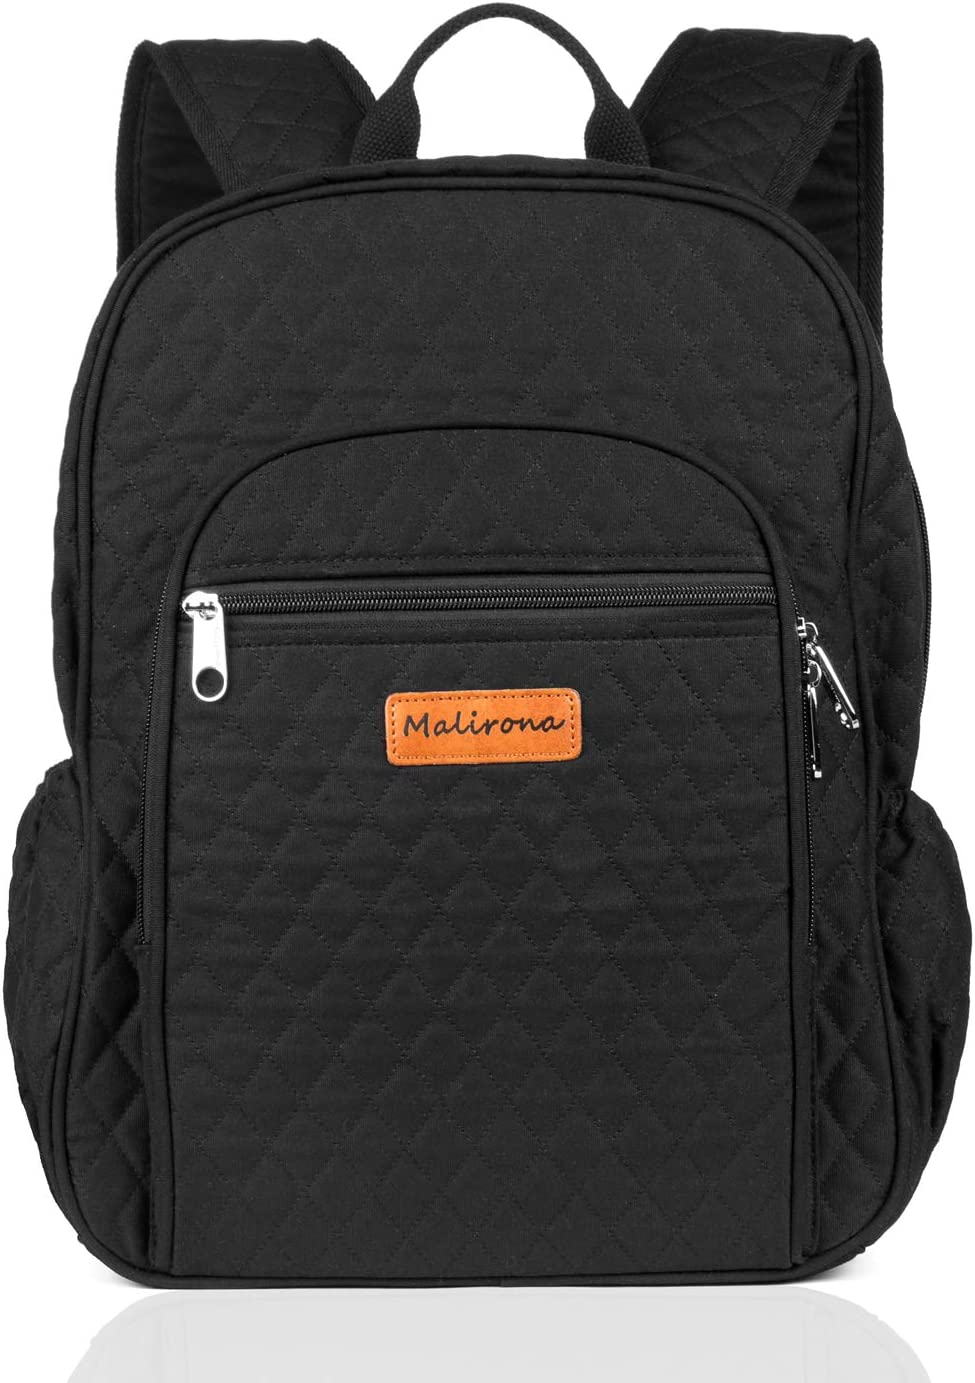 Malirona Canvas Campus Laptop Daypacks Backpack School Bags For Women And Men - Laptop Carrying, Trolley Sleeve, 7 Colors (Black)